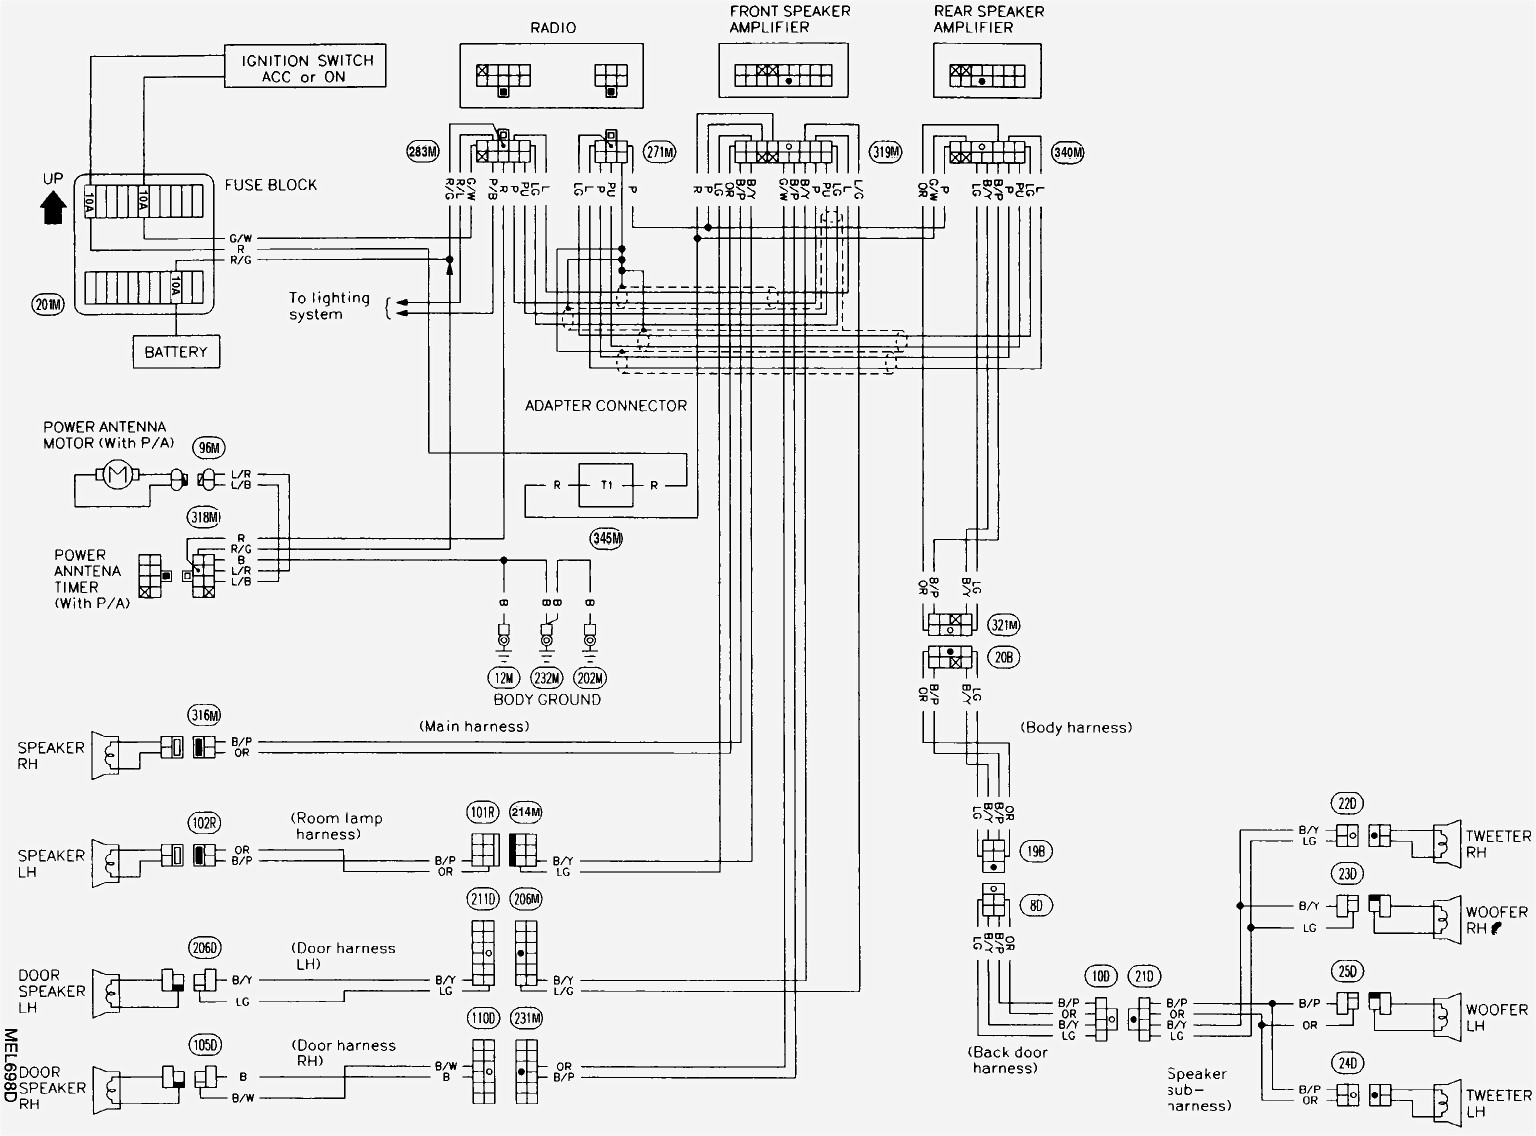 true freezer t 72f wiring diagram Collection-True T49f Wiring Diagram Download True Freezer T 49f Wiring Diagram Image 3 r 6-b